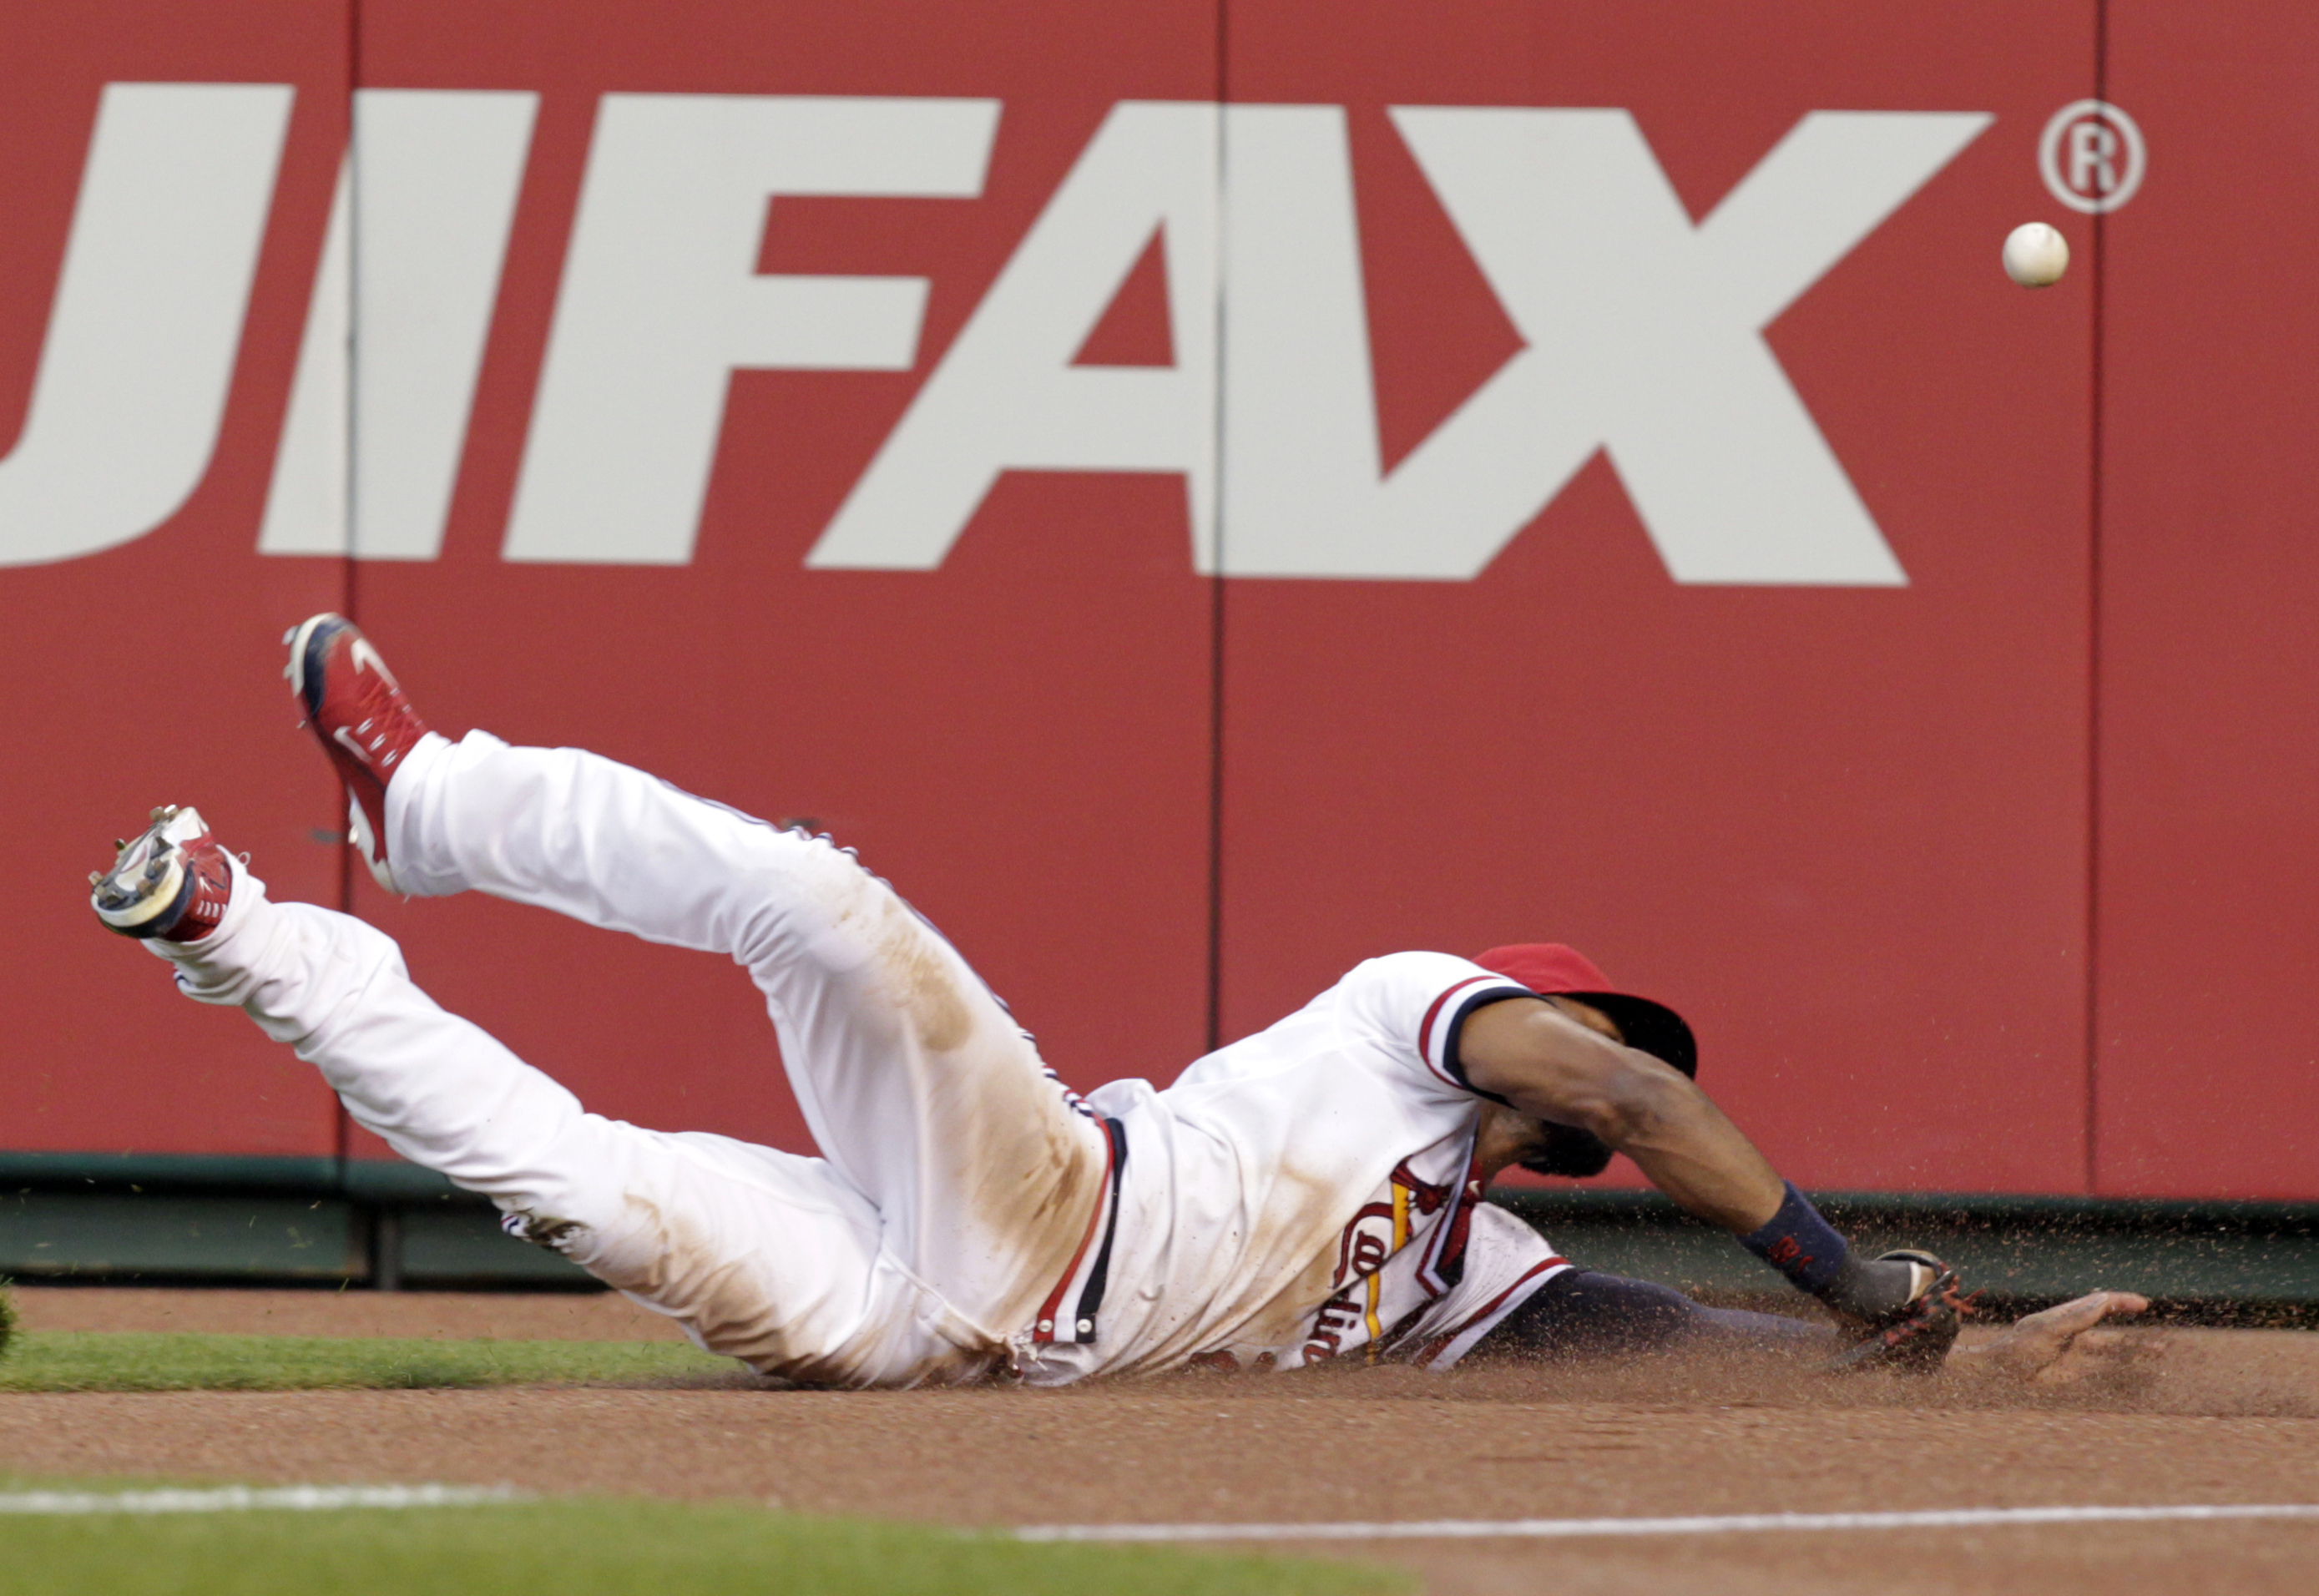 St. Louis Cardinals right fielder Jason Heyward (22) dives for but cannot catch a ball hit by Kansas City Royals' Salvador Perez in the sixth inning of a baseball game, Thursday, July 23, 2015, in St. Louis. (AP Photo/Tom Gannam)